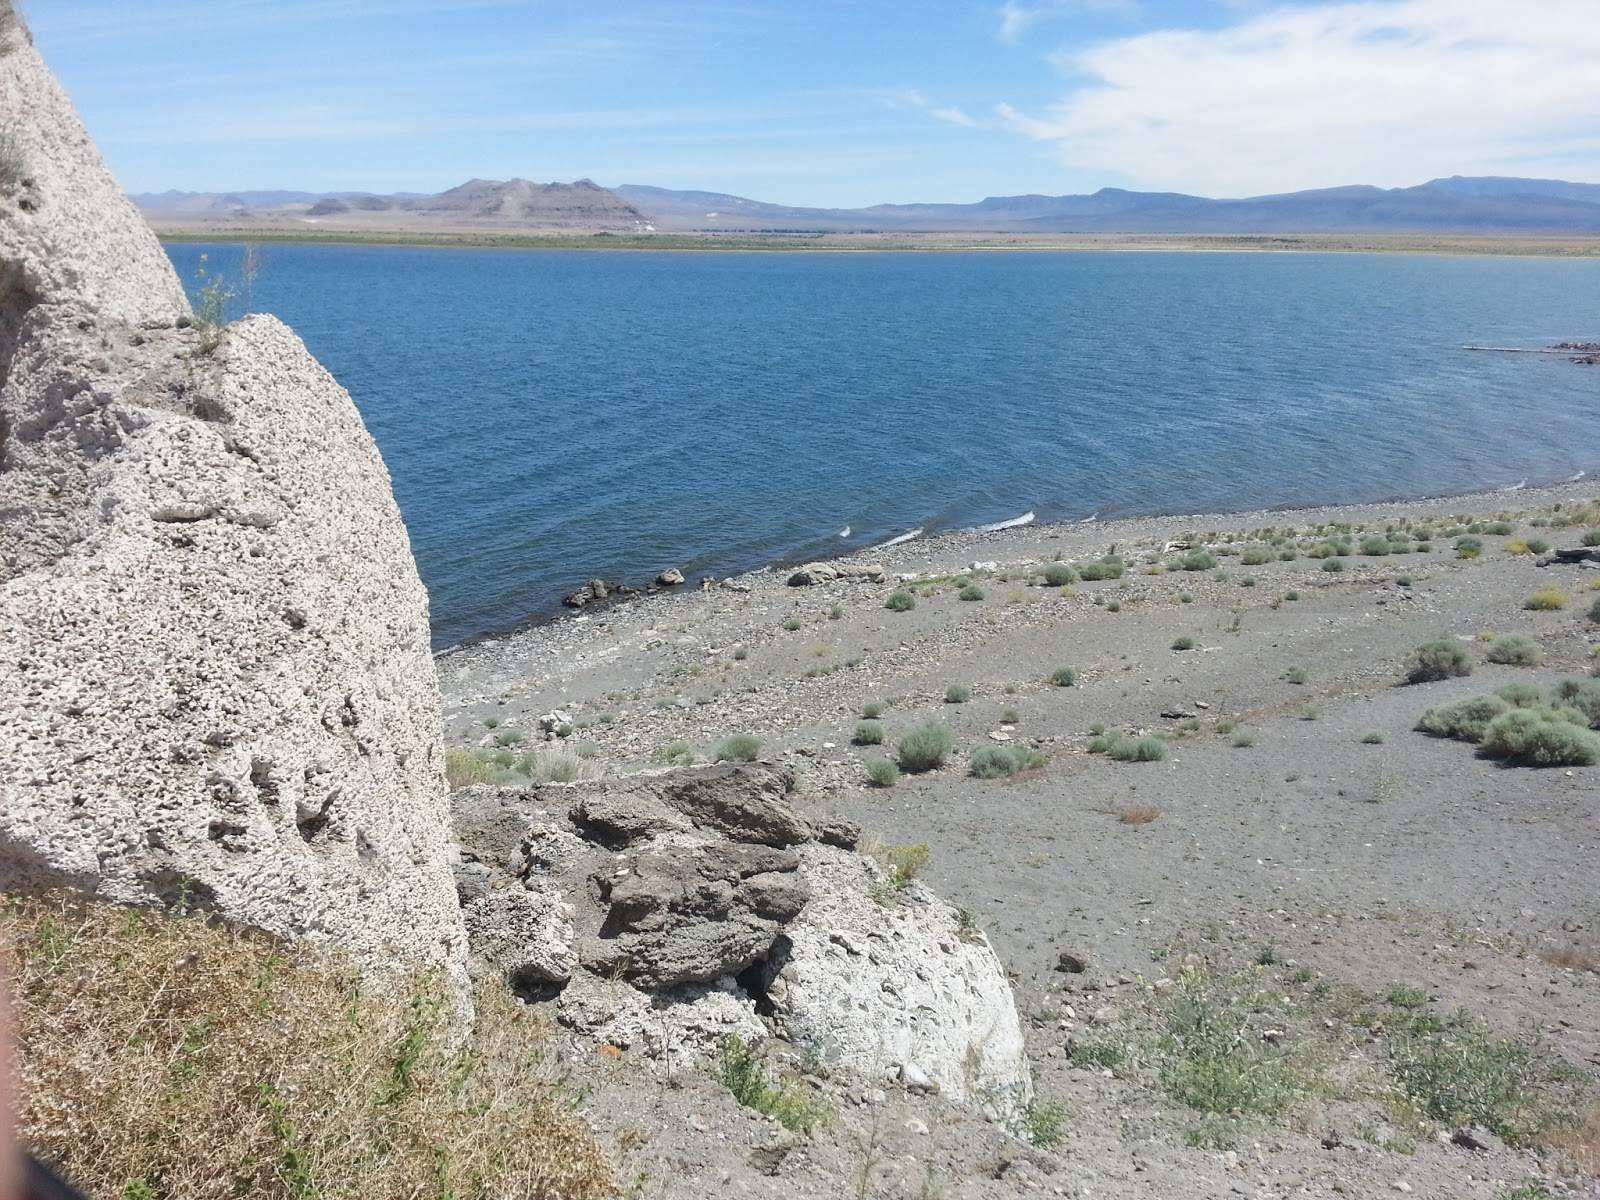 Alas, When We Got To Pyramid Lake, We Didn't Know Where To